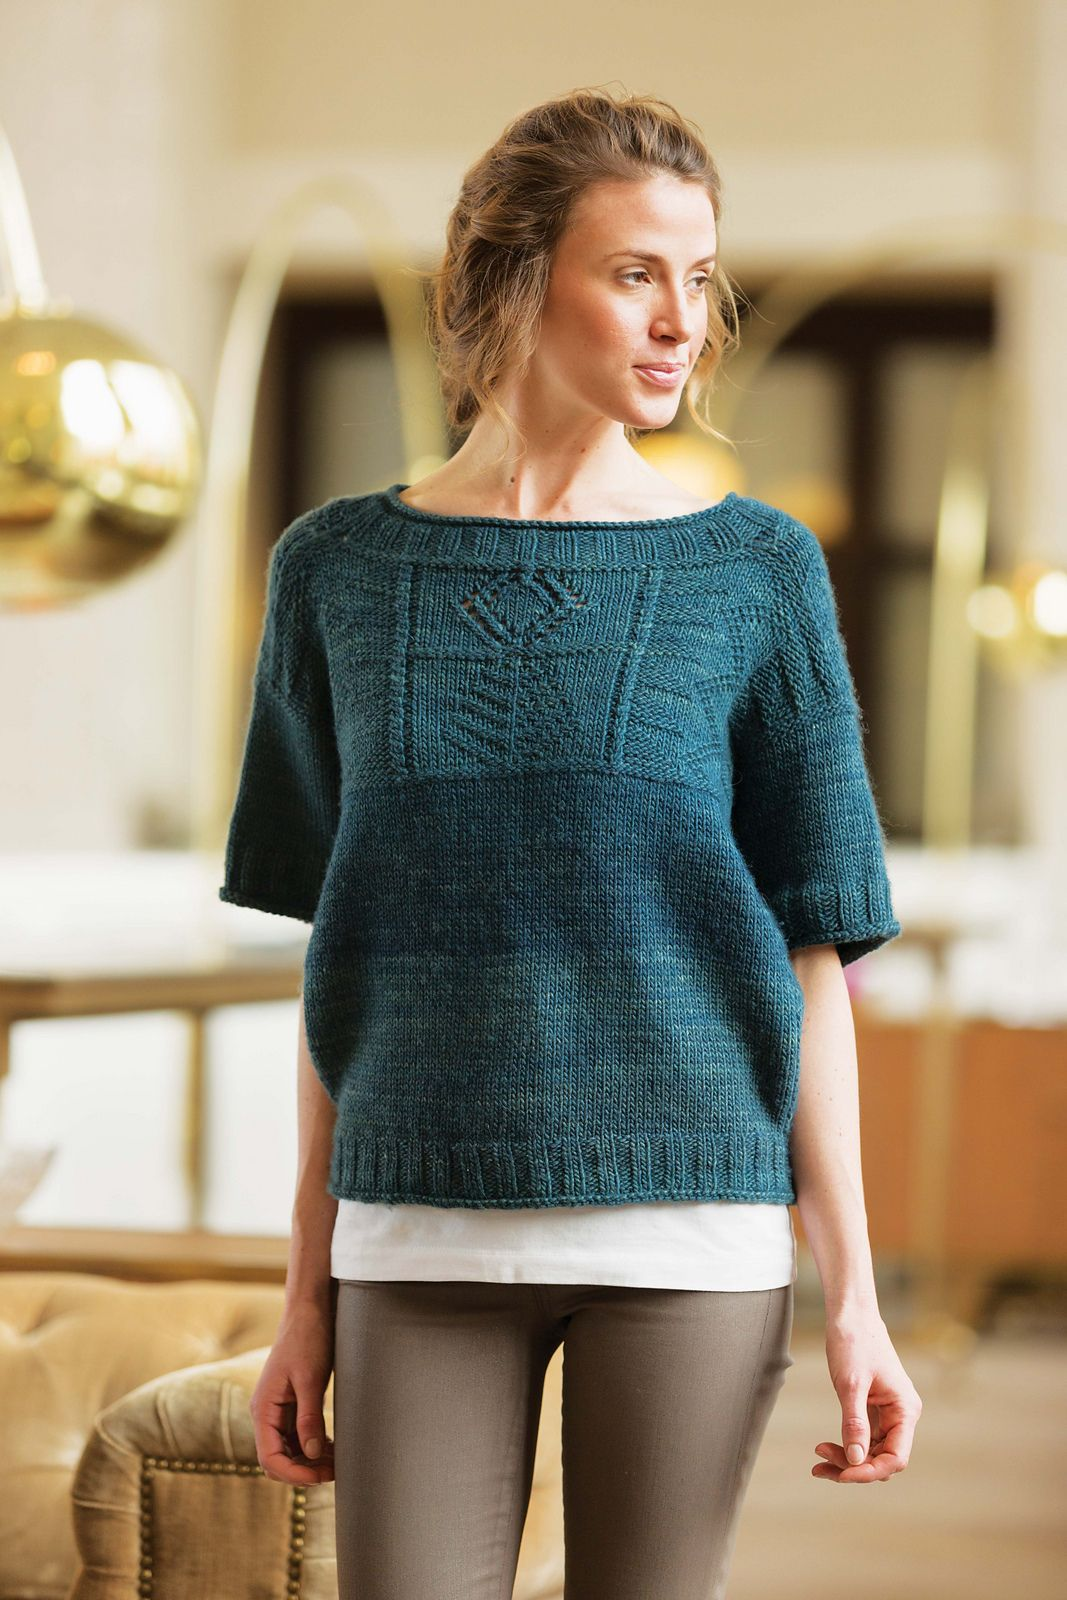 Ravelry: Eastbound Sweater by Courtney Kelley | Knit | Pinterest ...